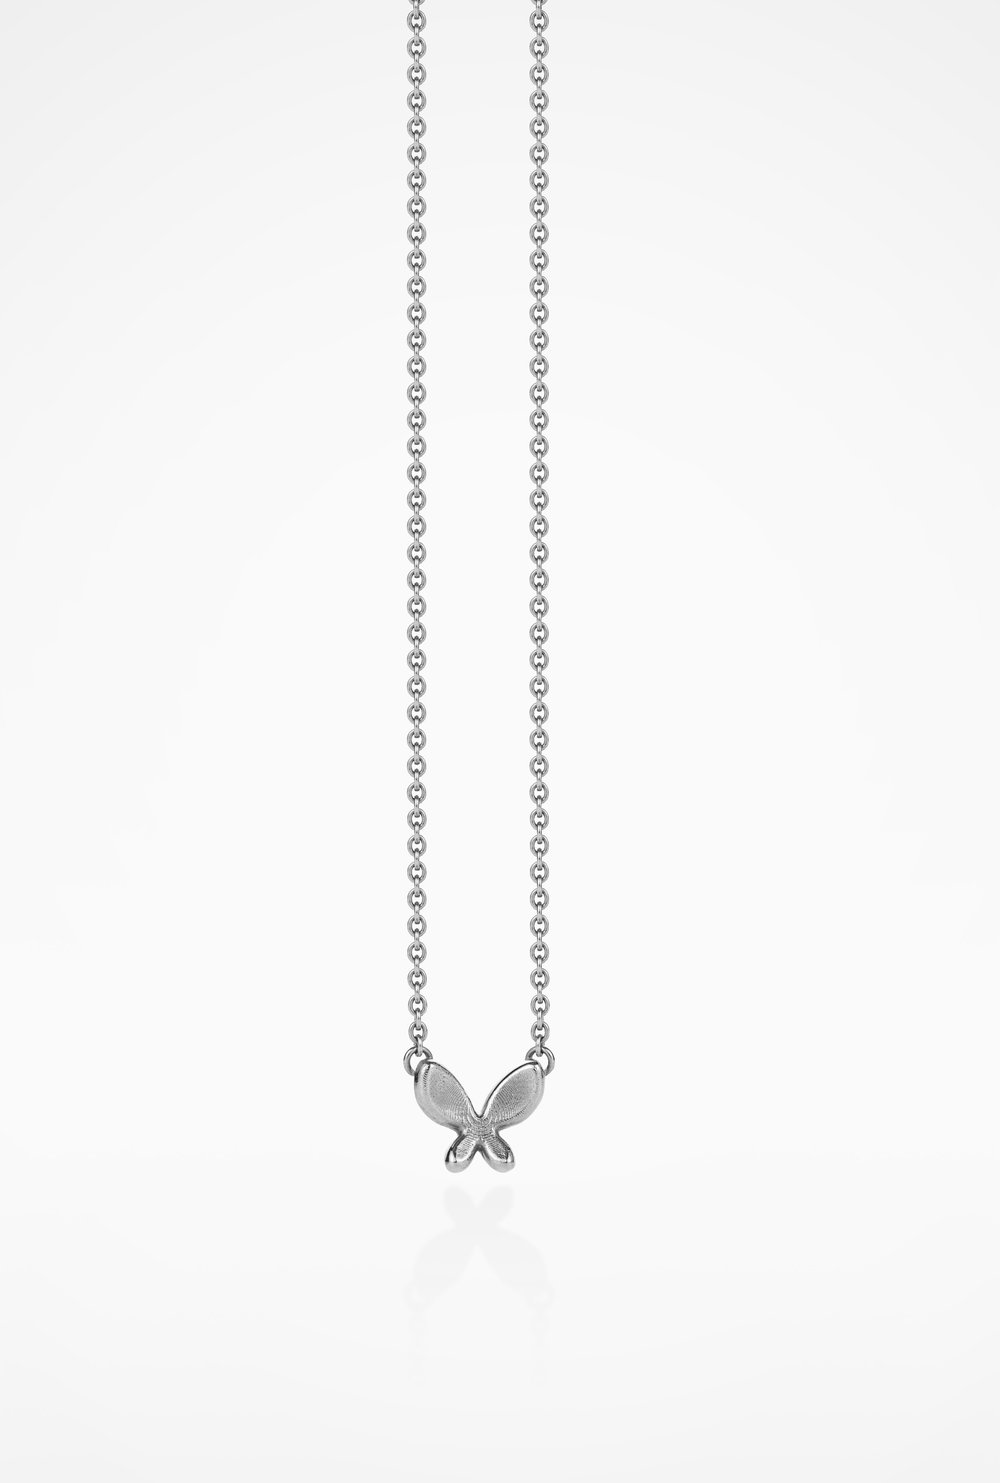 Kreuger Jewellery Amiral Necklace.jpeg